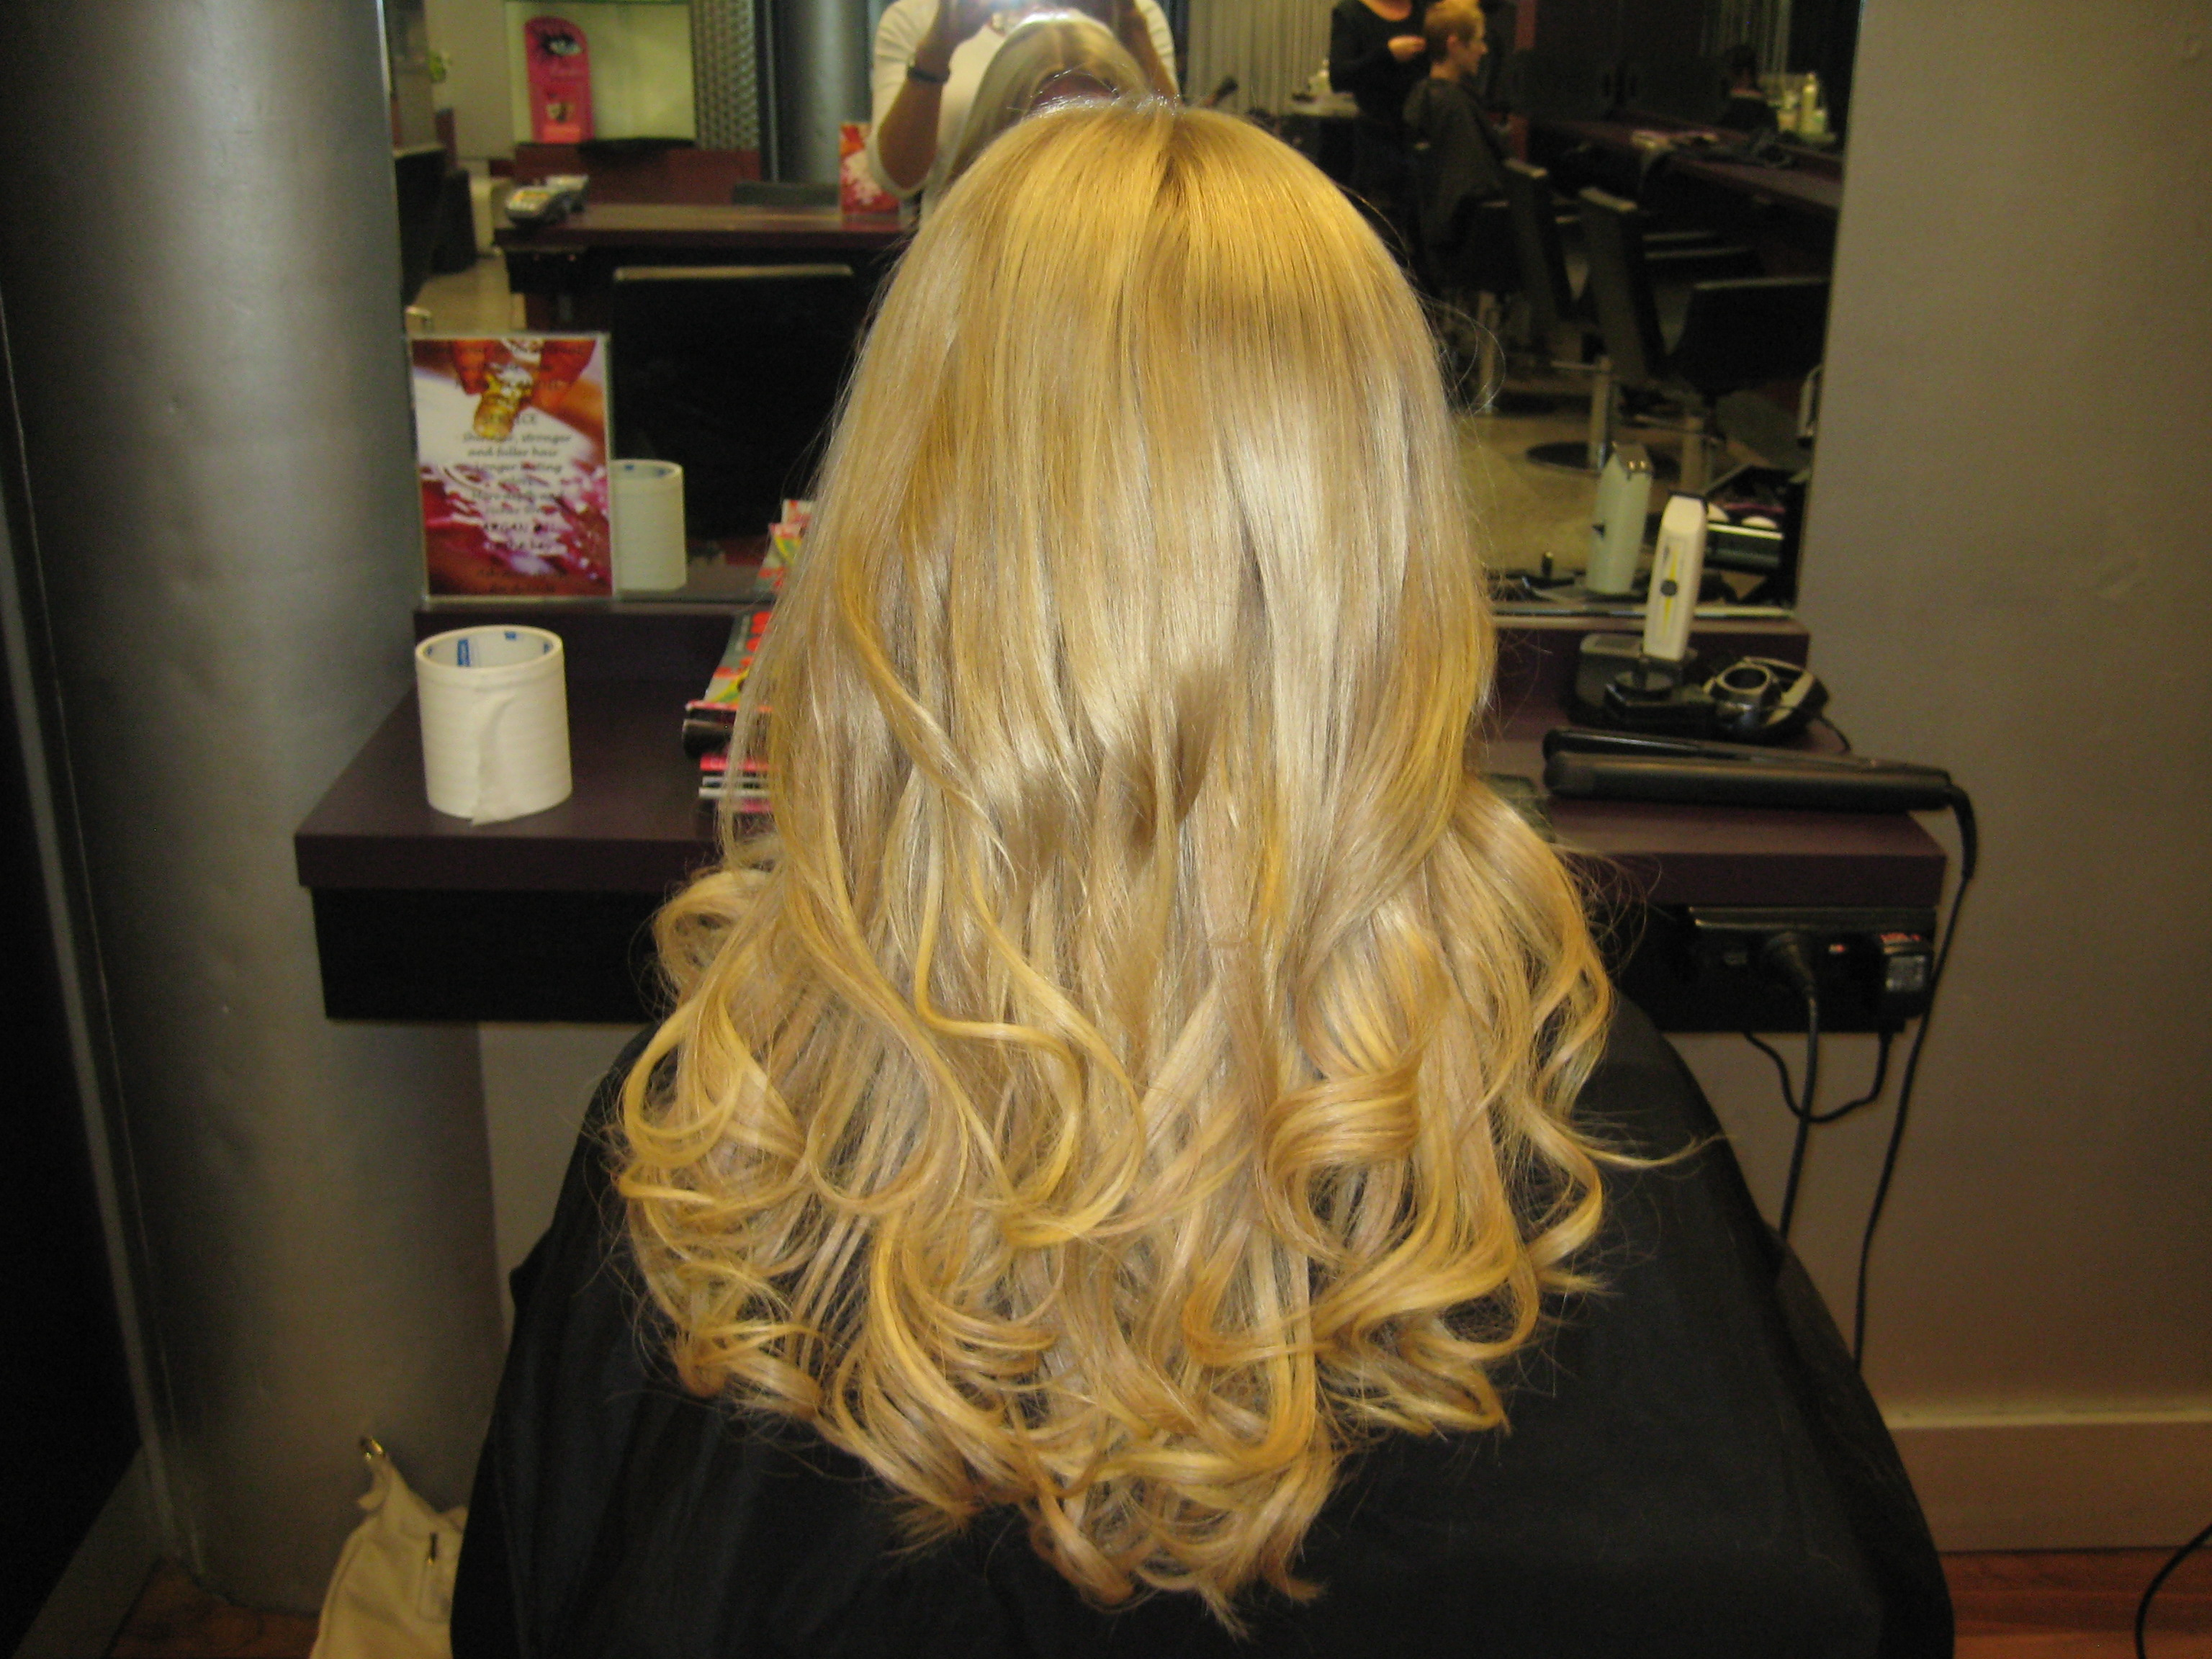 Hair Extensions With Blonde Tips With Hair Extensions Blonde